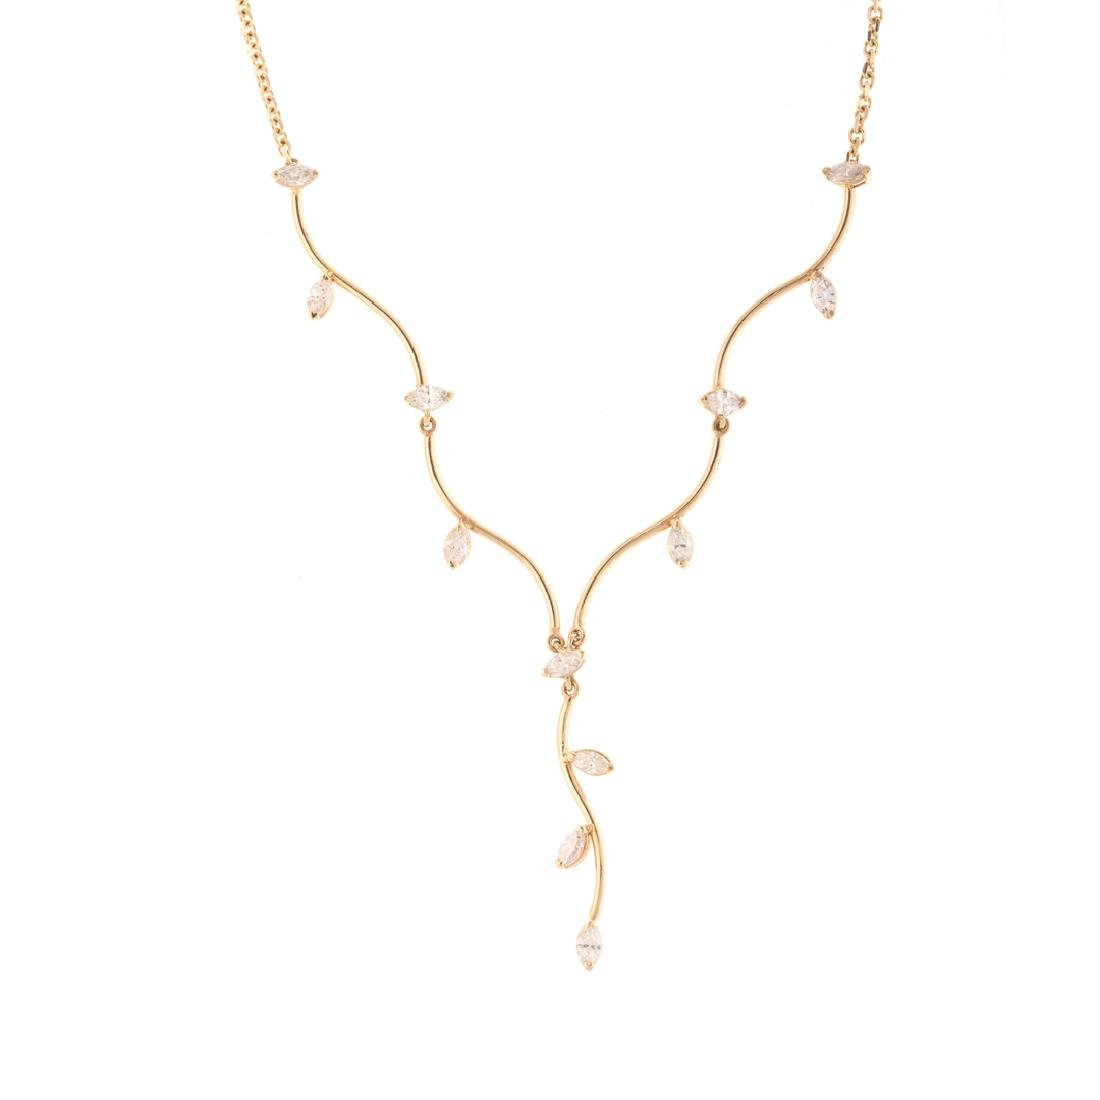 A Lady's Marquise Cut Diamond Necklace